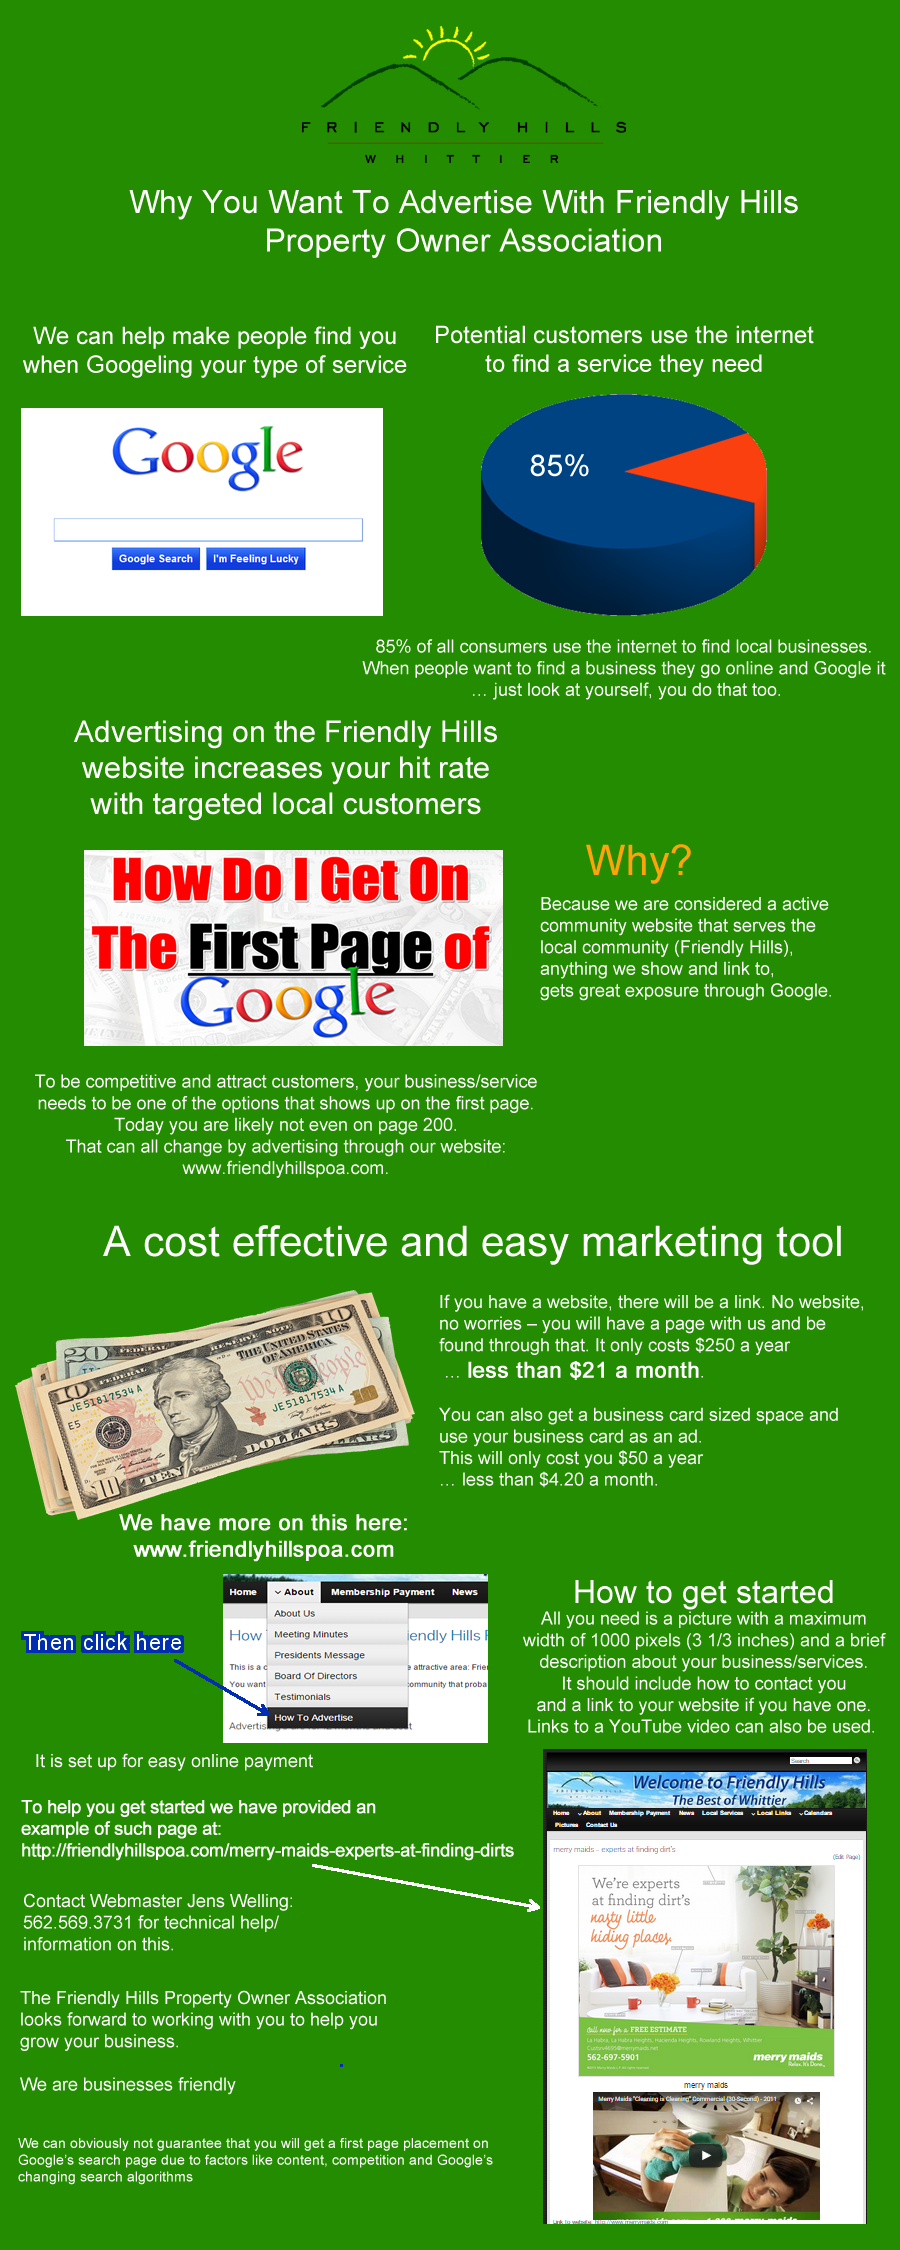 Advertising-with-friendly-hills-POA-2B